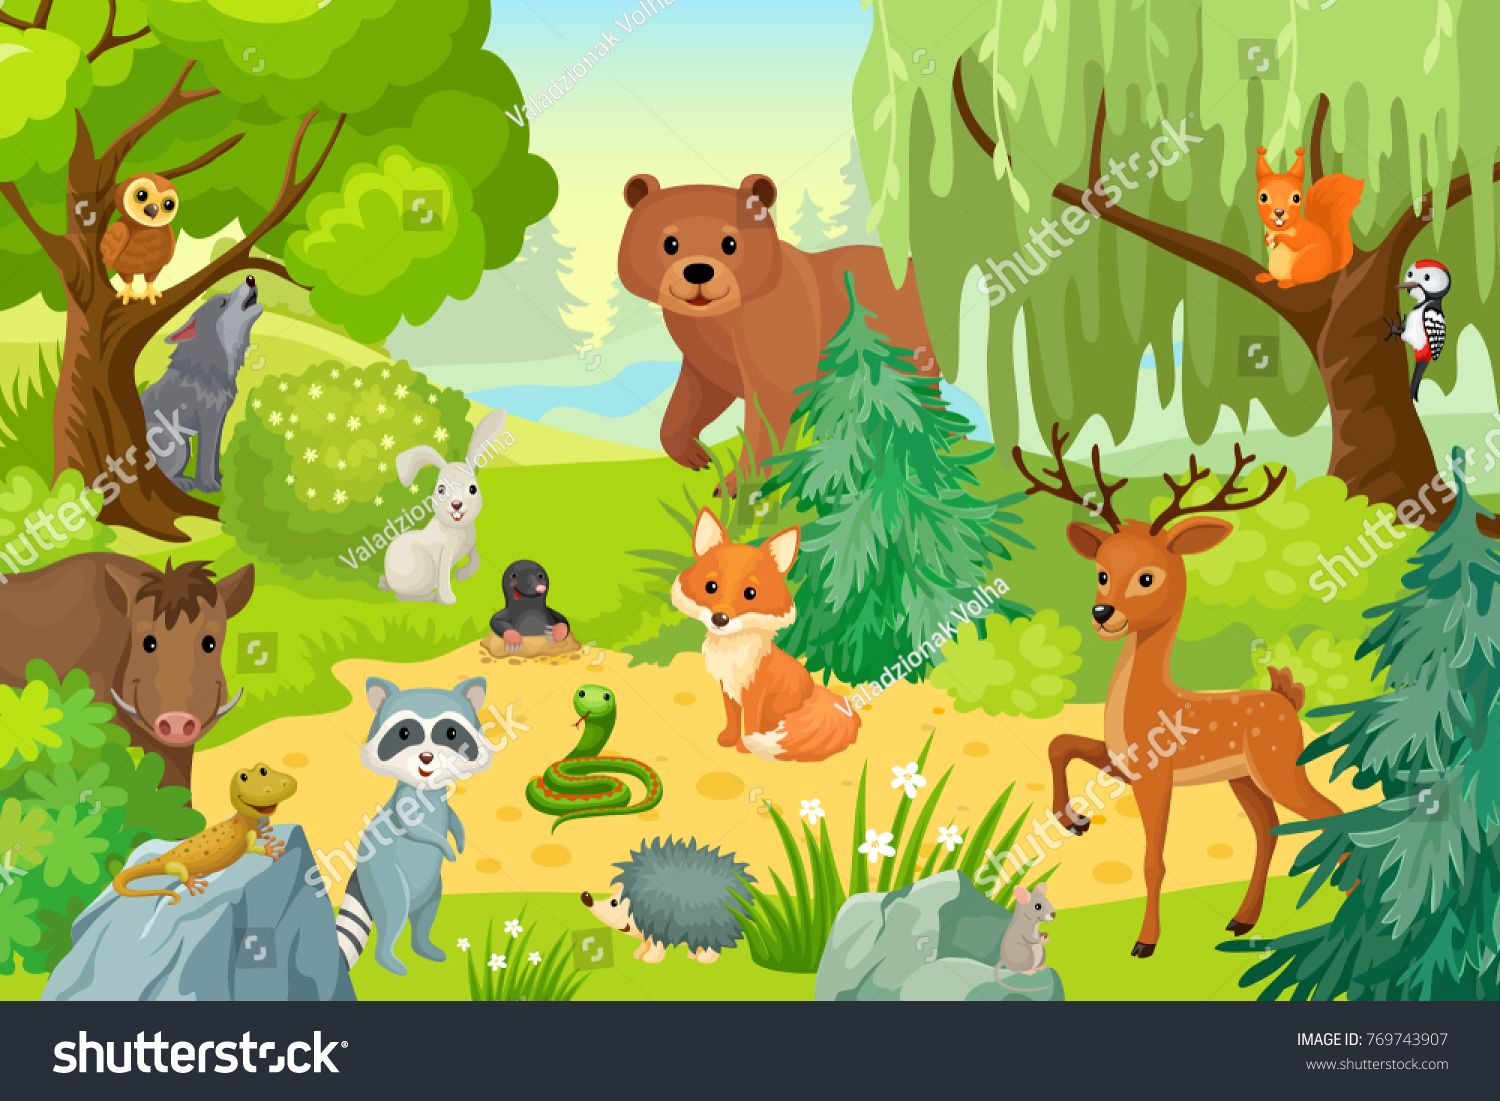 Group Of Wild Animals On The Fringe Of The Forest Vector Illustration In A Cartoon Style Animals Wild Cartoon Animals Cartoon Sea Animals